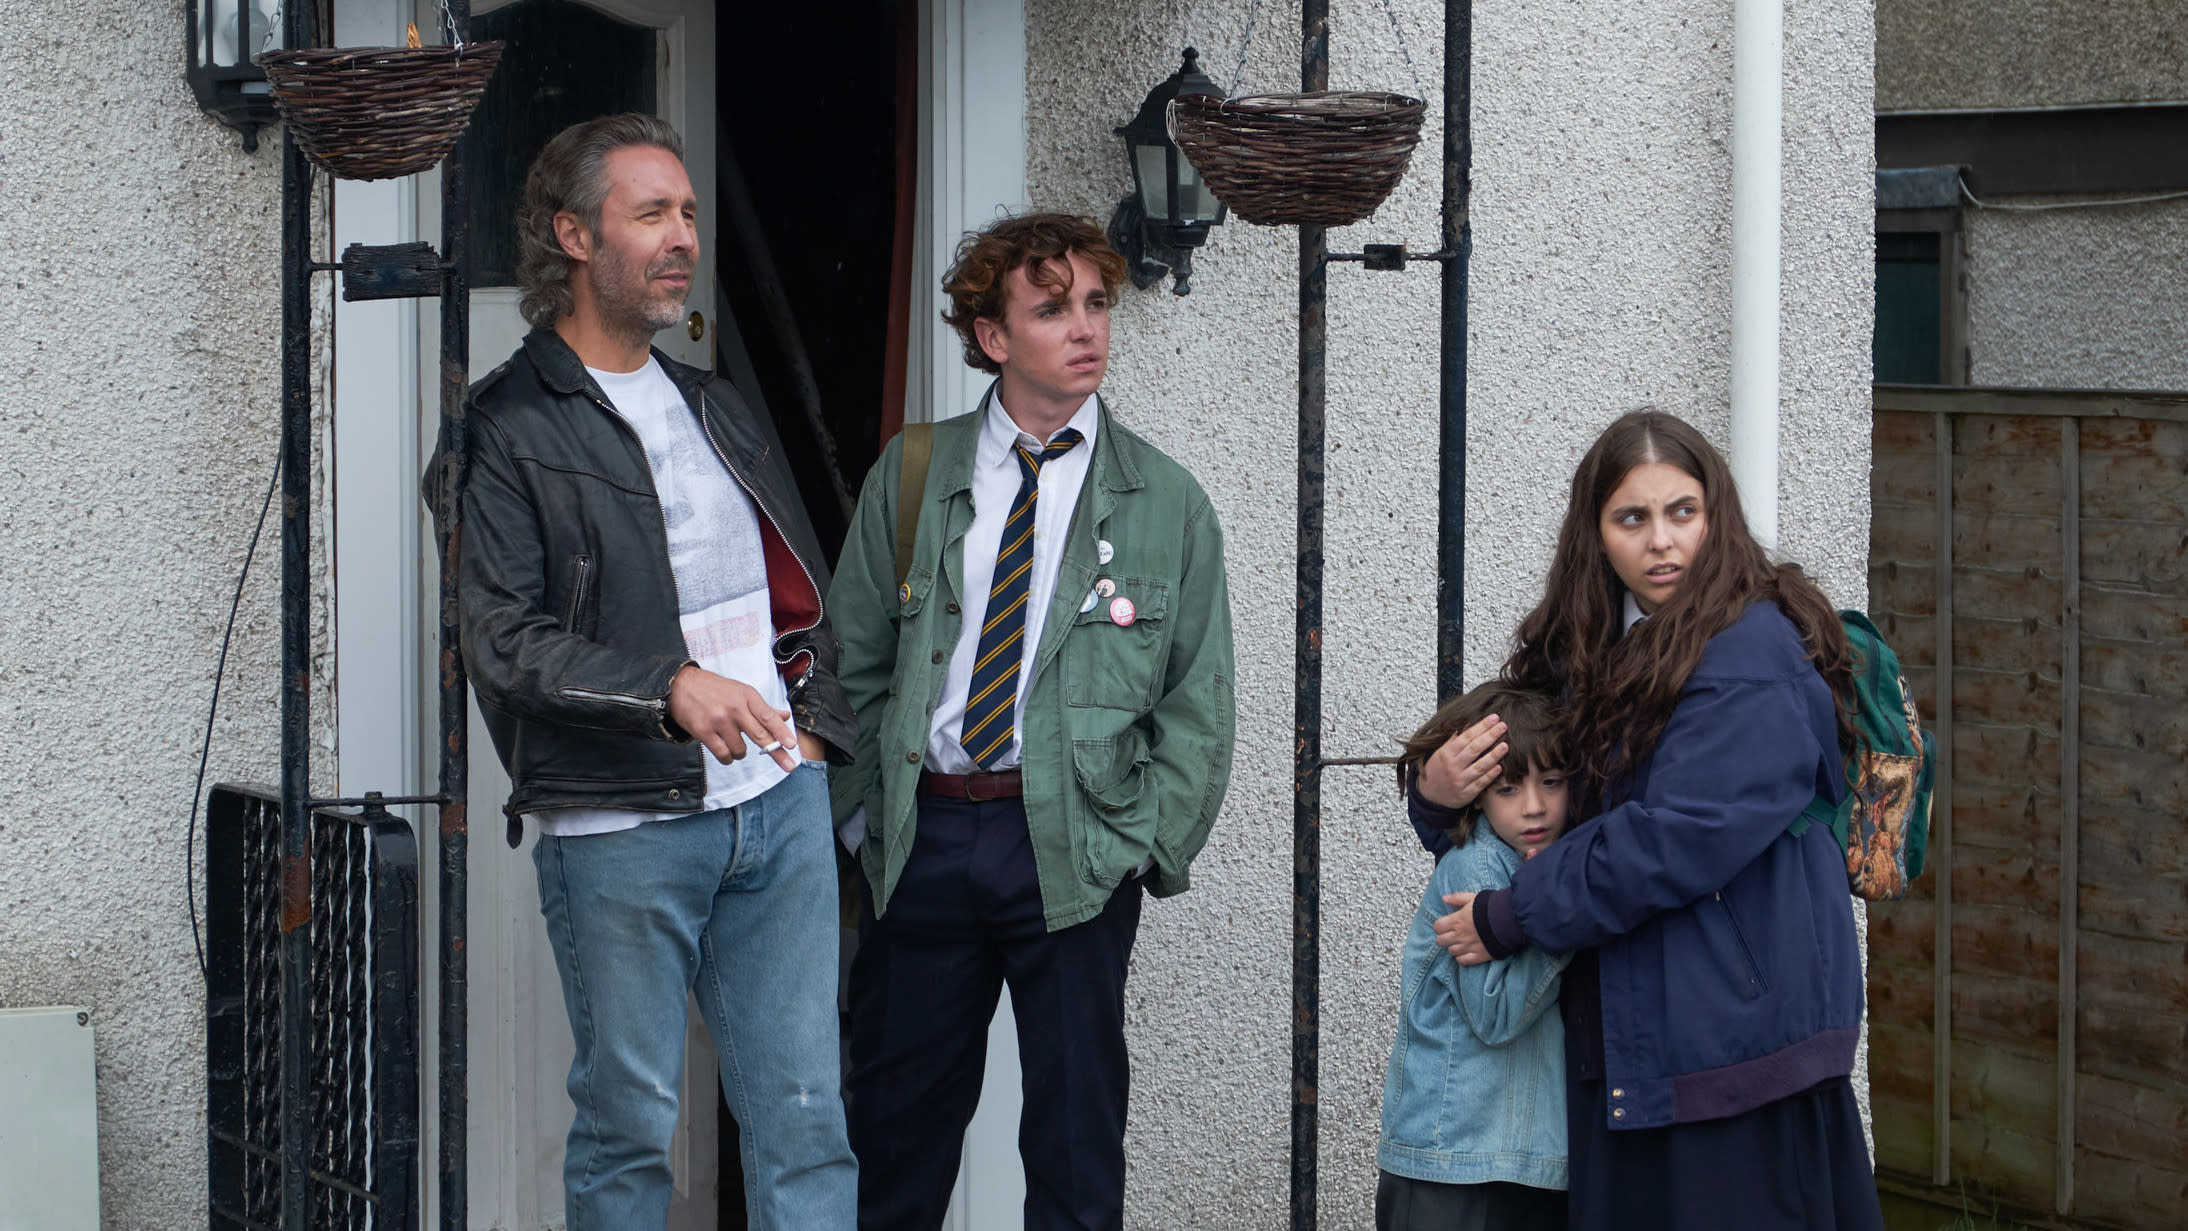 The Morrigan family in 'How To Build a Girl'. (Credit: Lionsgate)